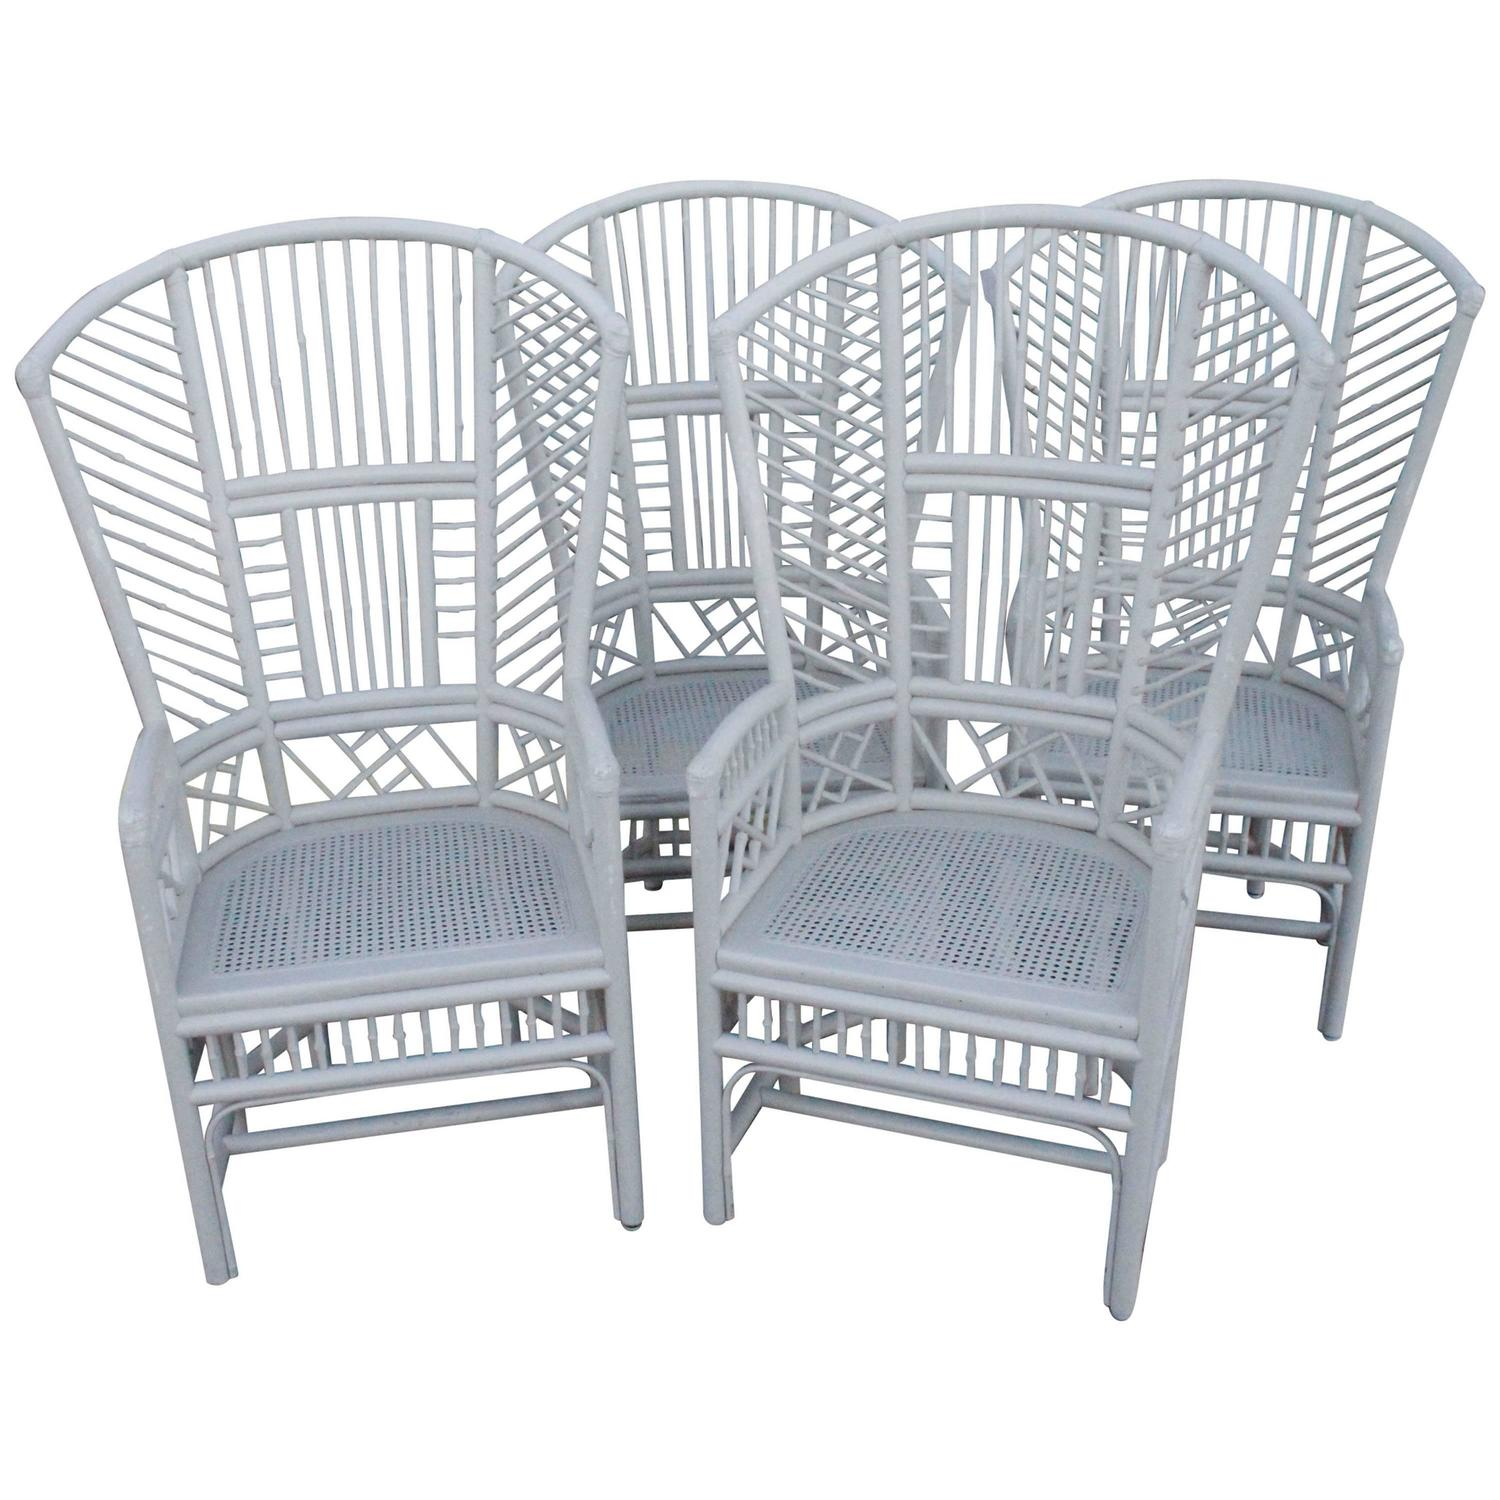 chinese chippendale chairs uk wing chair slip covers set of four brighton pavilion high back rattan club for sale at 1stdibs